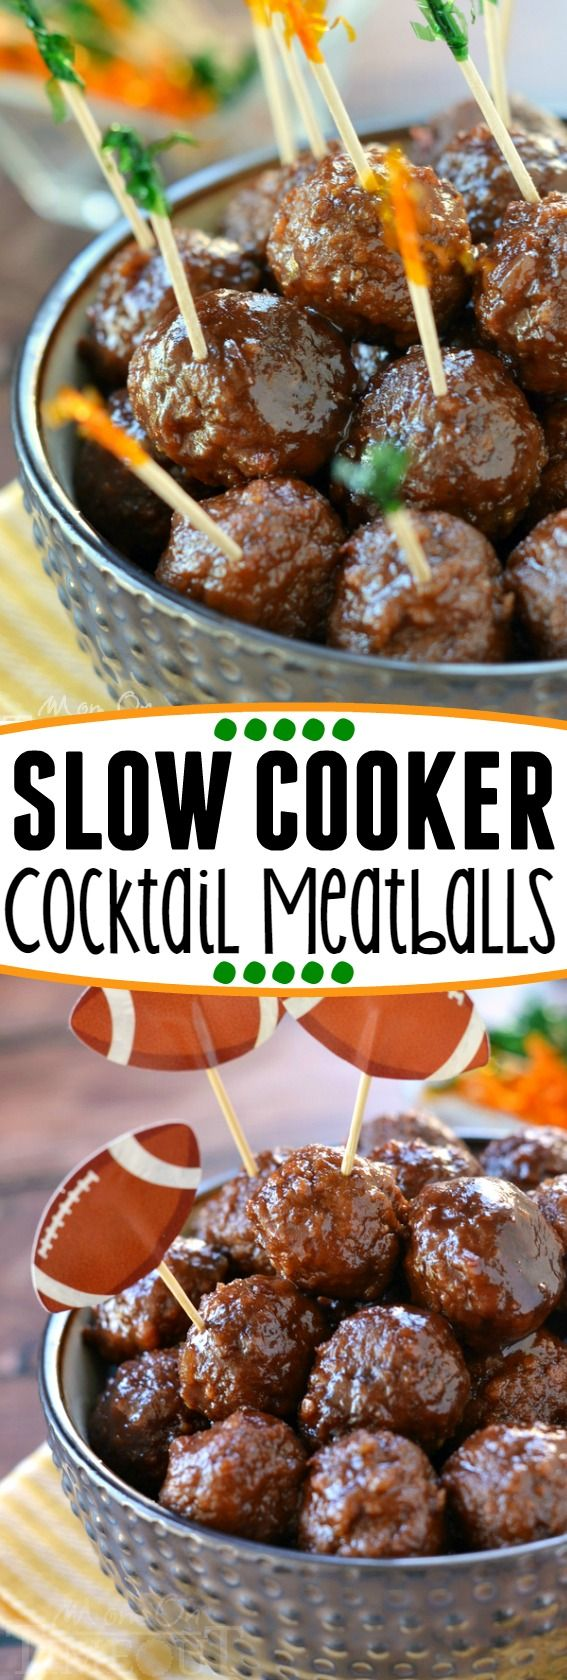 The best cocktail meatballs ever! These Slow Cooker Cocktail Meatballs are made with just three ingredients! Guaranteed to be a hit at your next party! | Mom On Timeout